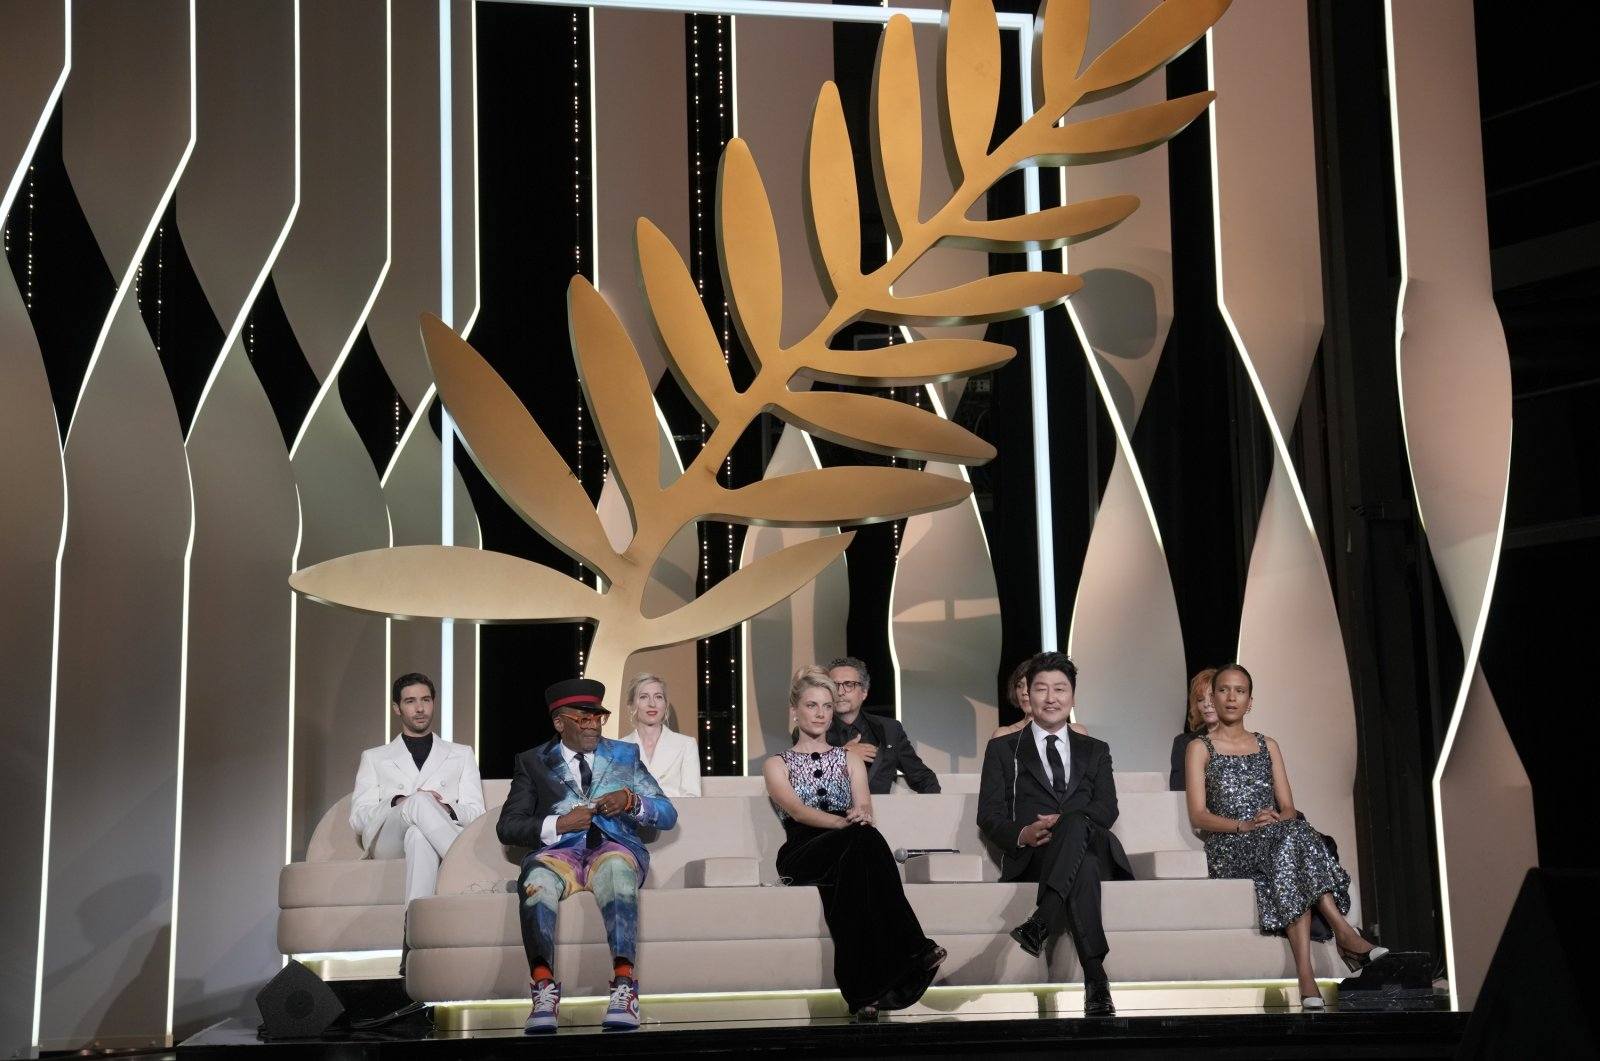 Jury members Tahar Rahim, from back left, Jessica Hausner, Kleber Mendonca Filho, Mylene Farmer, Spike Lee, from bottom left, Melanie Laurent, Song Kang-ho, and Mati Diop appear during the awards ceremony at the 74th international film festival, Cannes, southern France, July 17, 2021. (AP Photo)